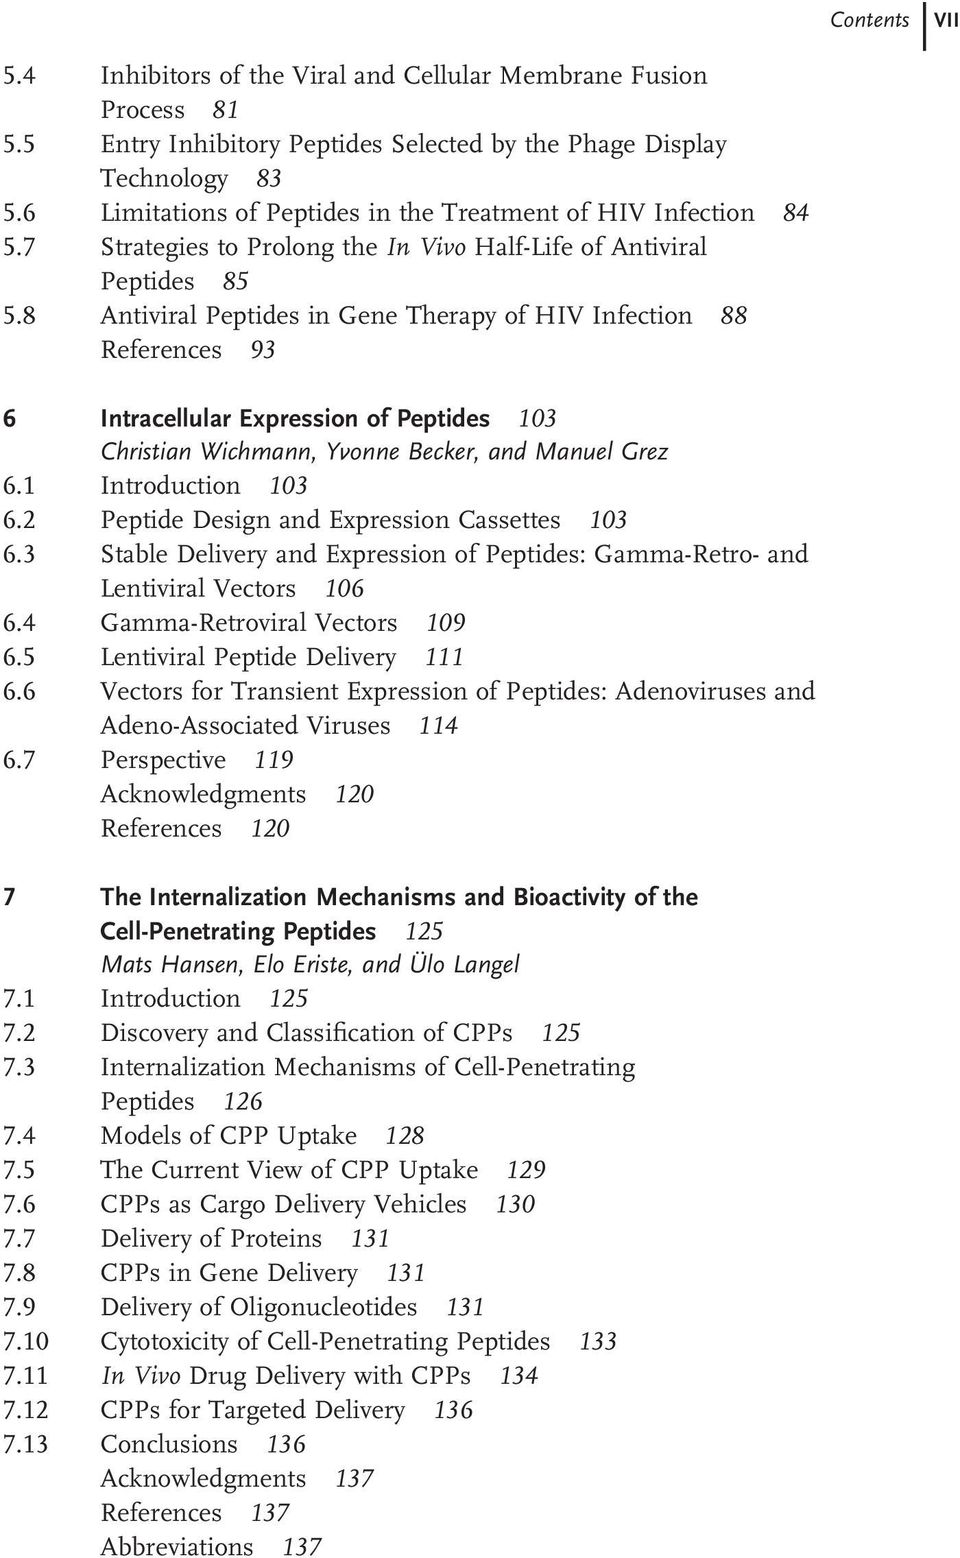 8 Antiviral Peptides in Gene Therapy of HIV Infection 88 References 93 6 Intracellular Expression of Peptides 103 Christian Wichmann, Yvonne Becker, and Manuel Grez 6.1 Introduction 103 6.